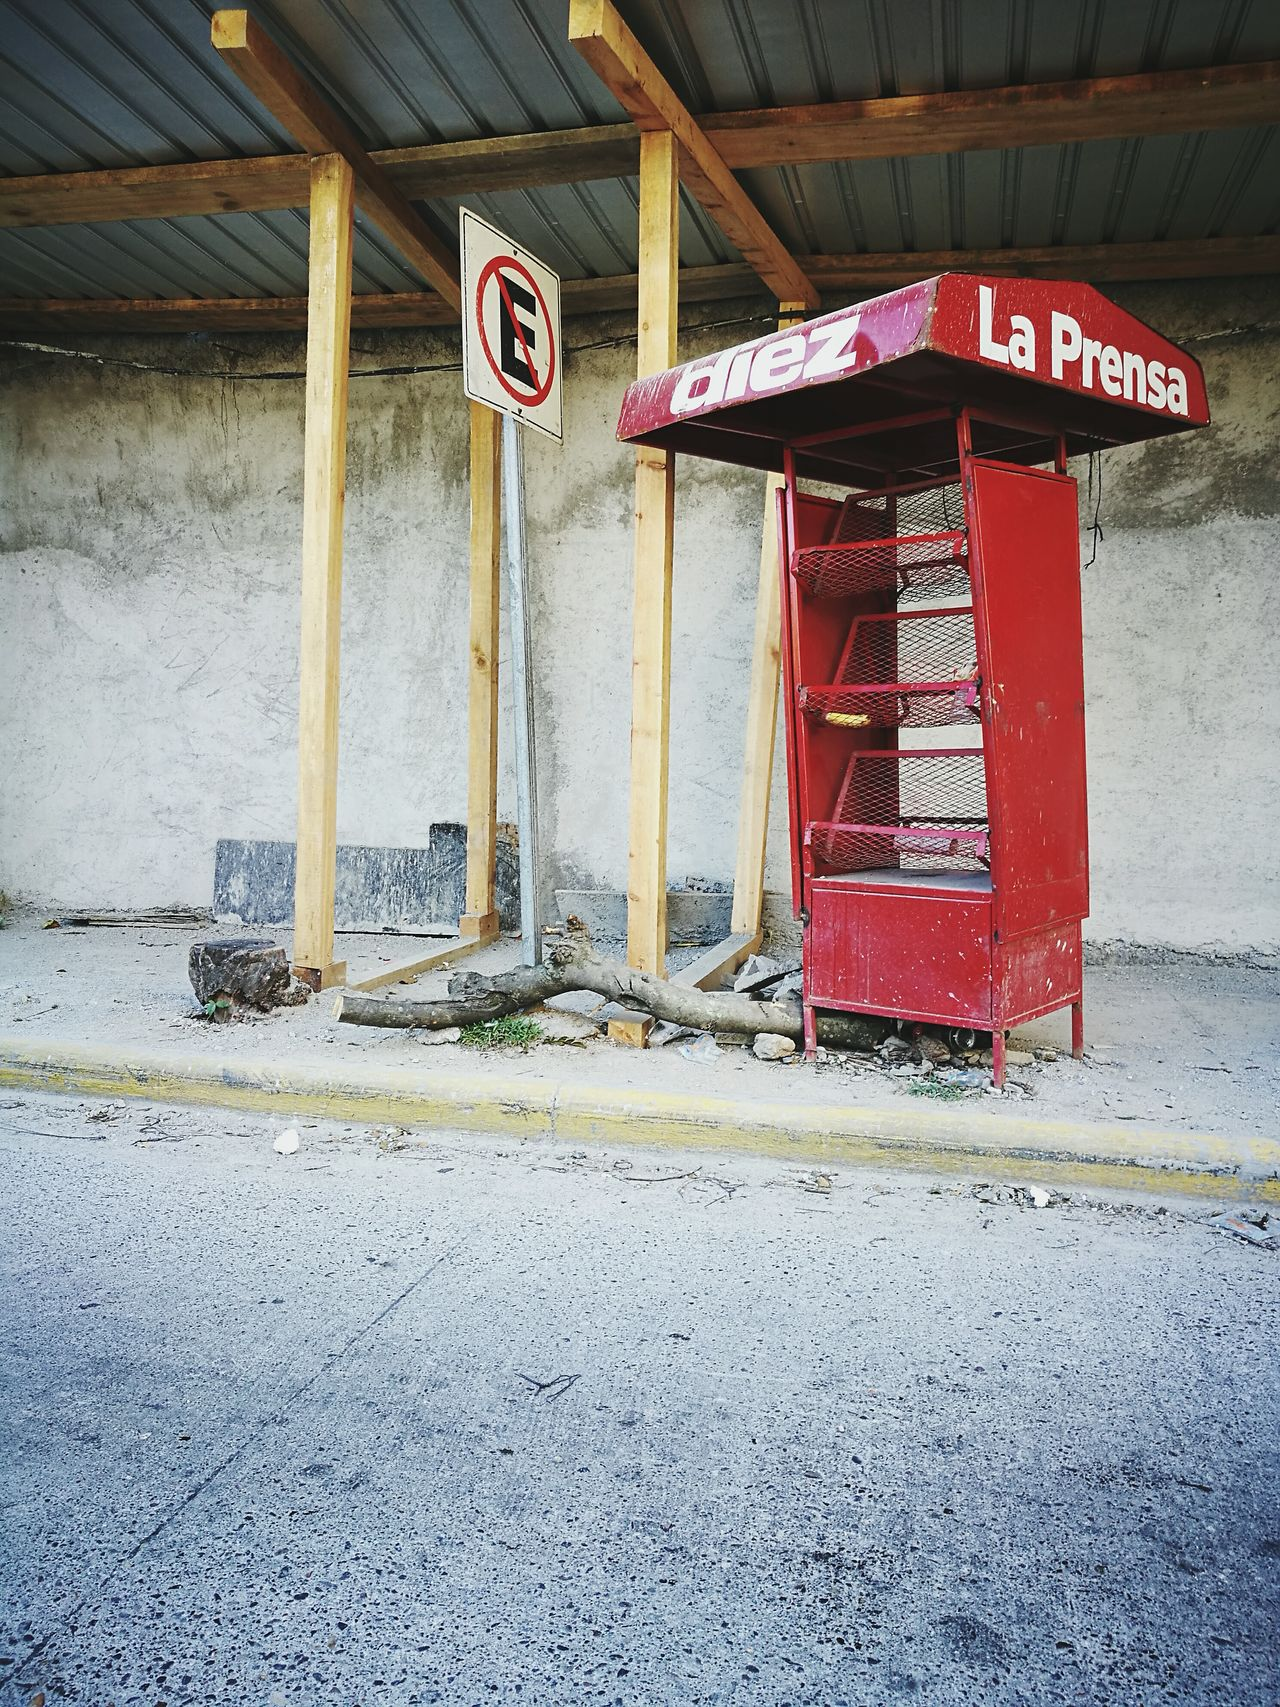 I was driving by a site that I usually pass on weekly basis and noted how badly damaged the news stand was. I swear it was in better condition last week I saw it Red No People Day Outdoors Architecture Newsstand No Parking Sign Construction Site